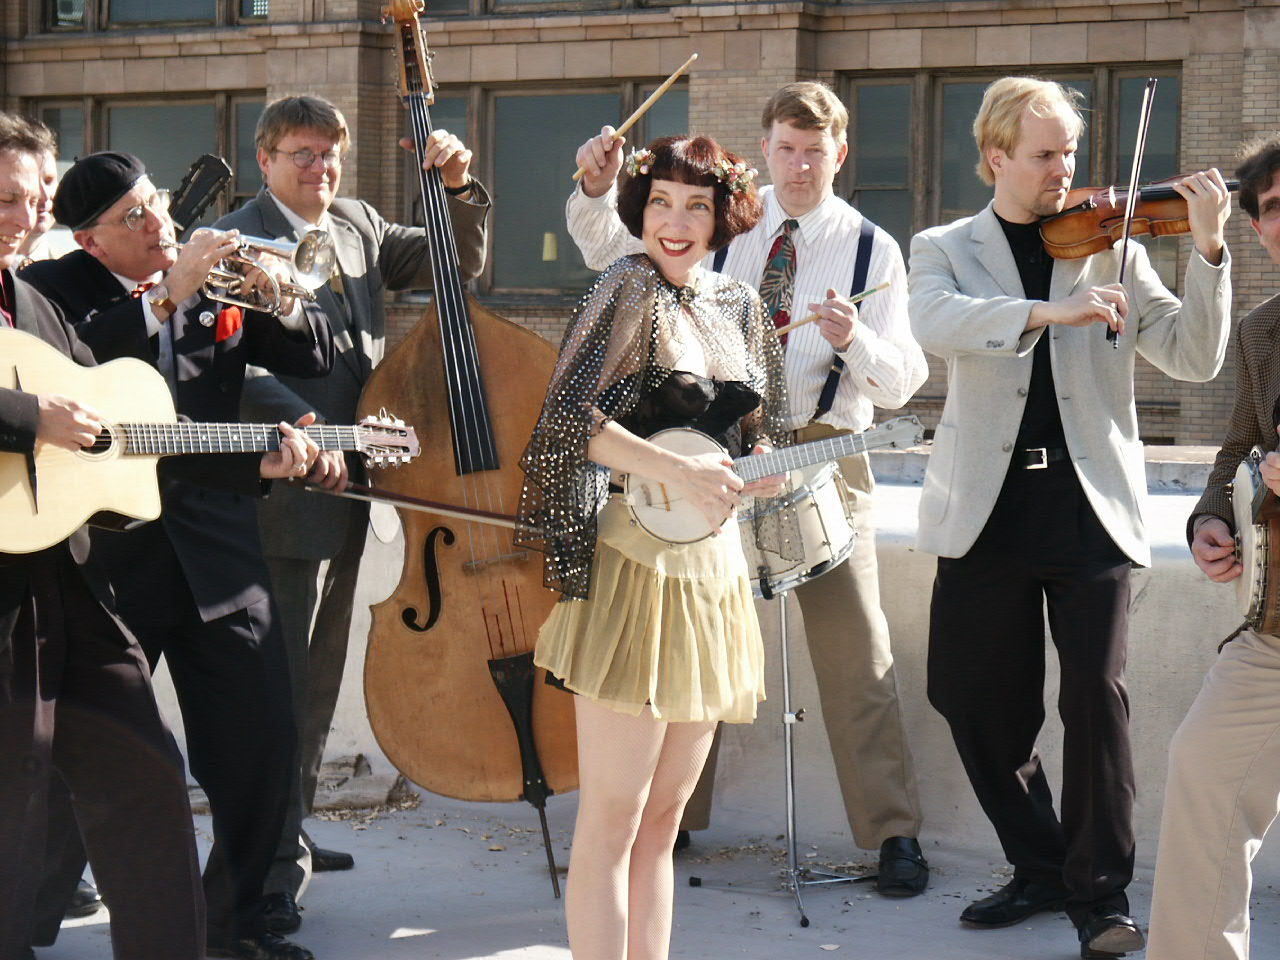 Featuring musical performances byJanet Klein and Her Parlor Boys